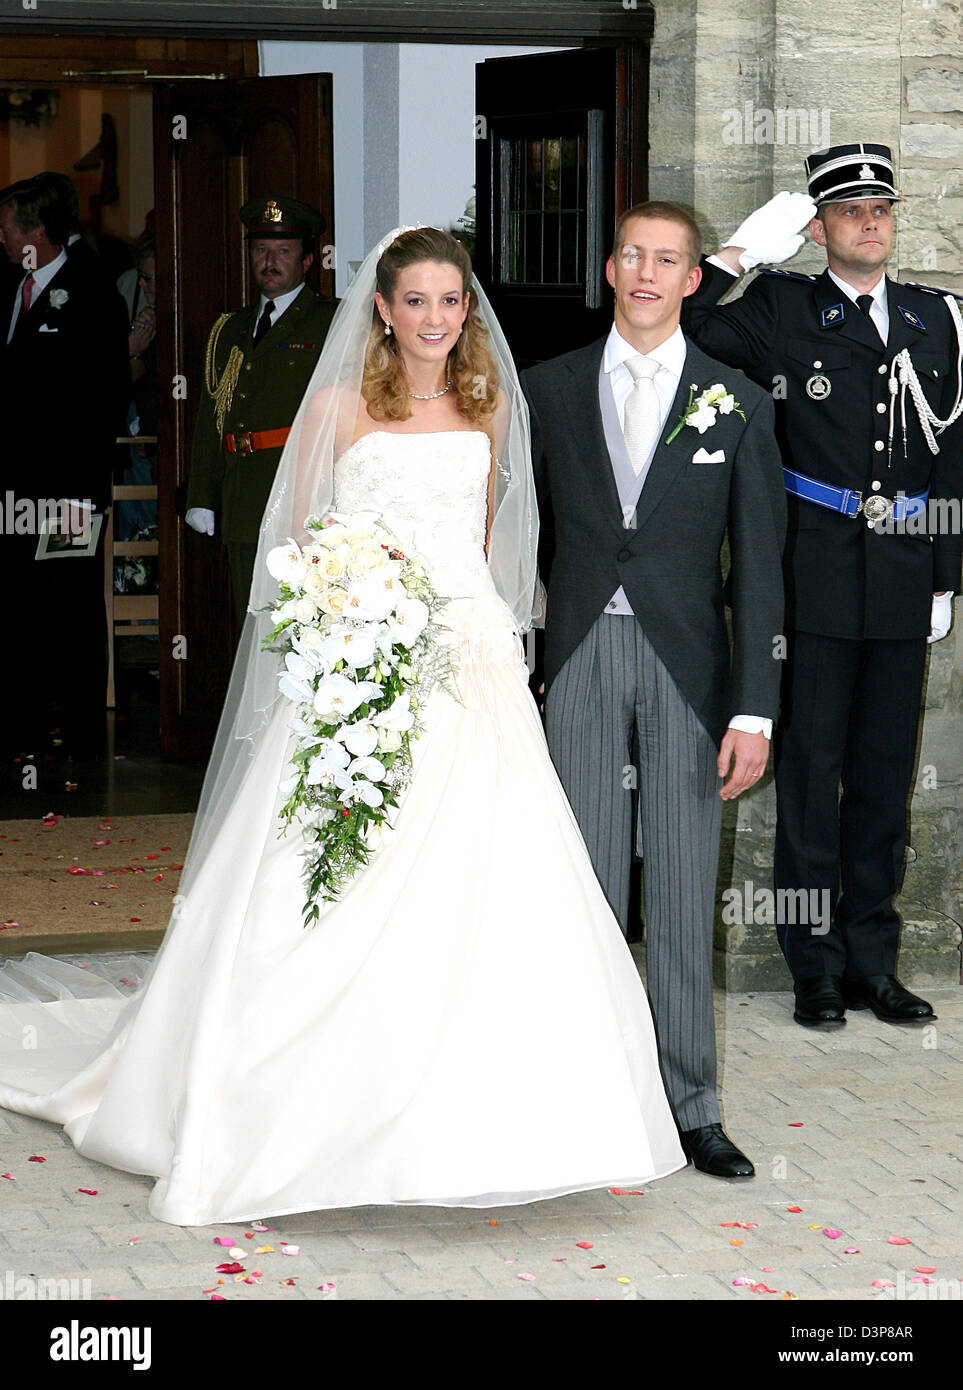 Bride Tessy Antony L And Groom Prince Louis Of